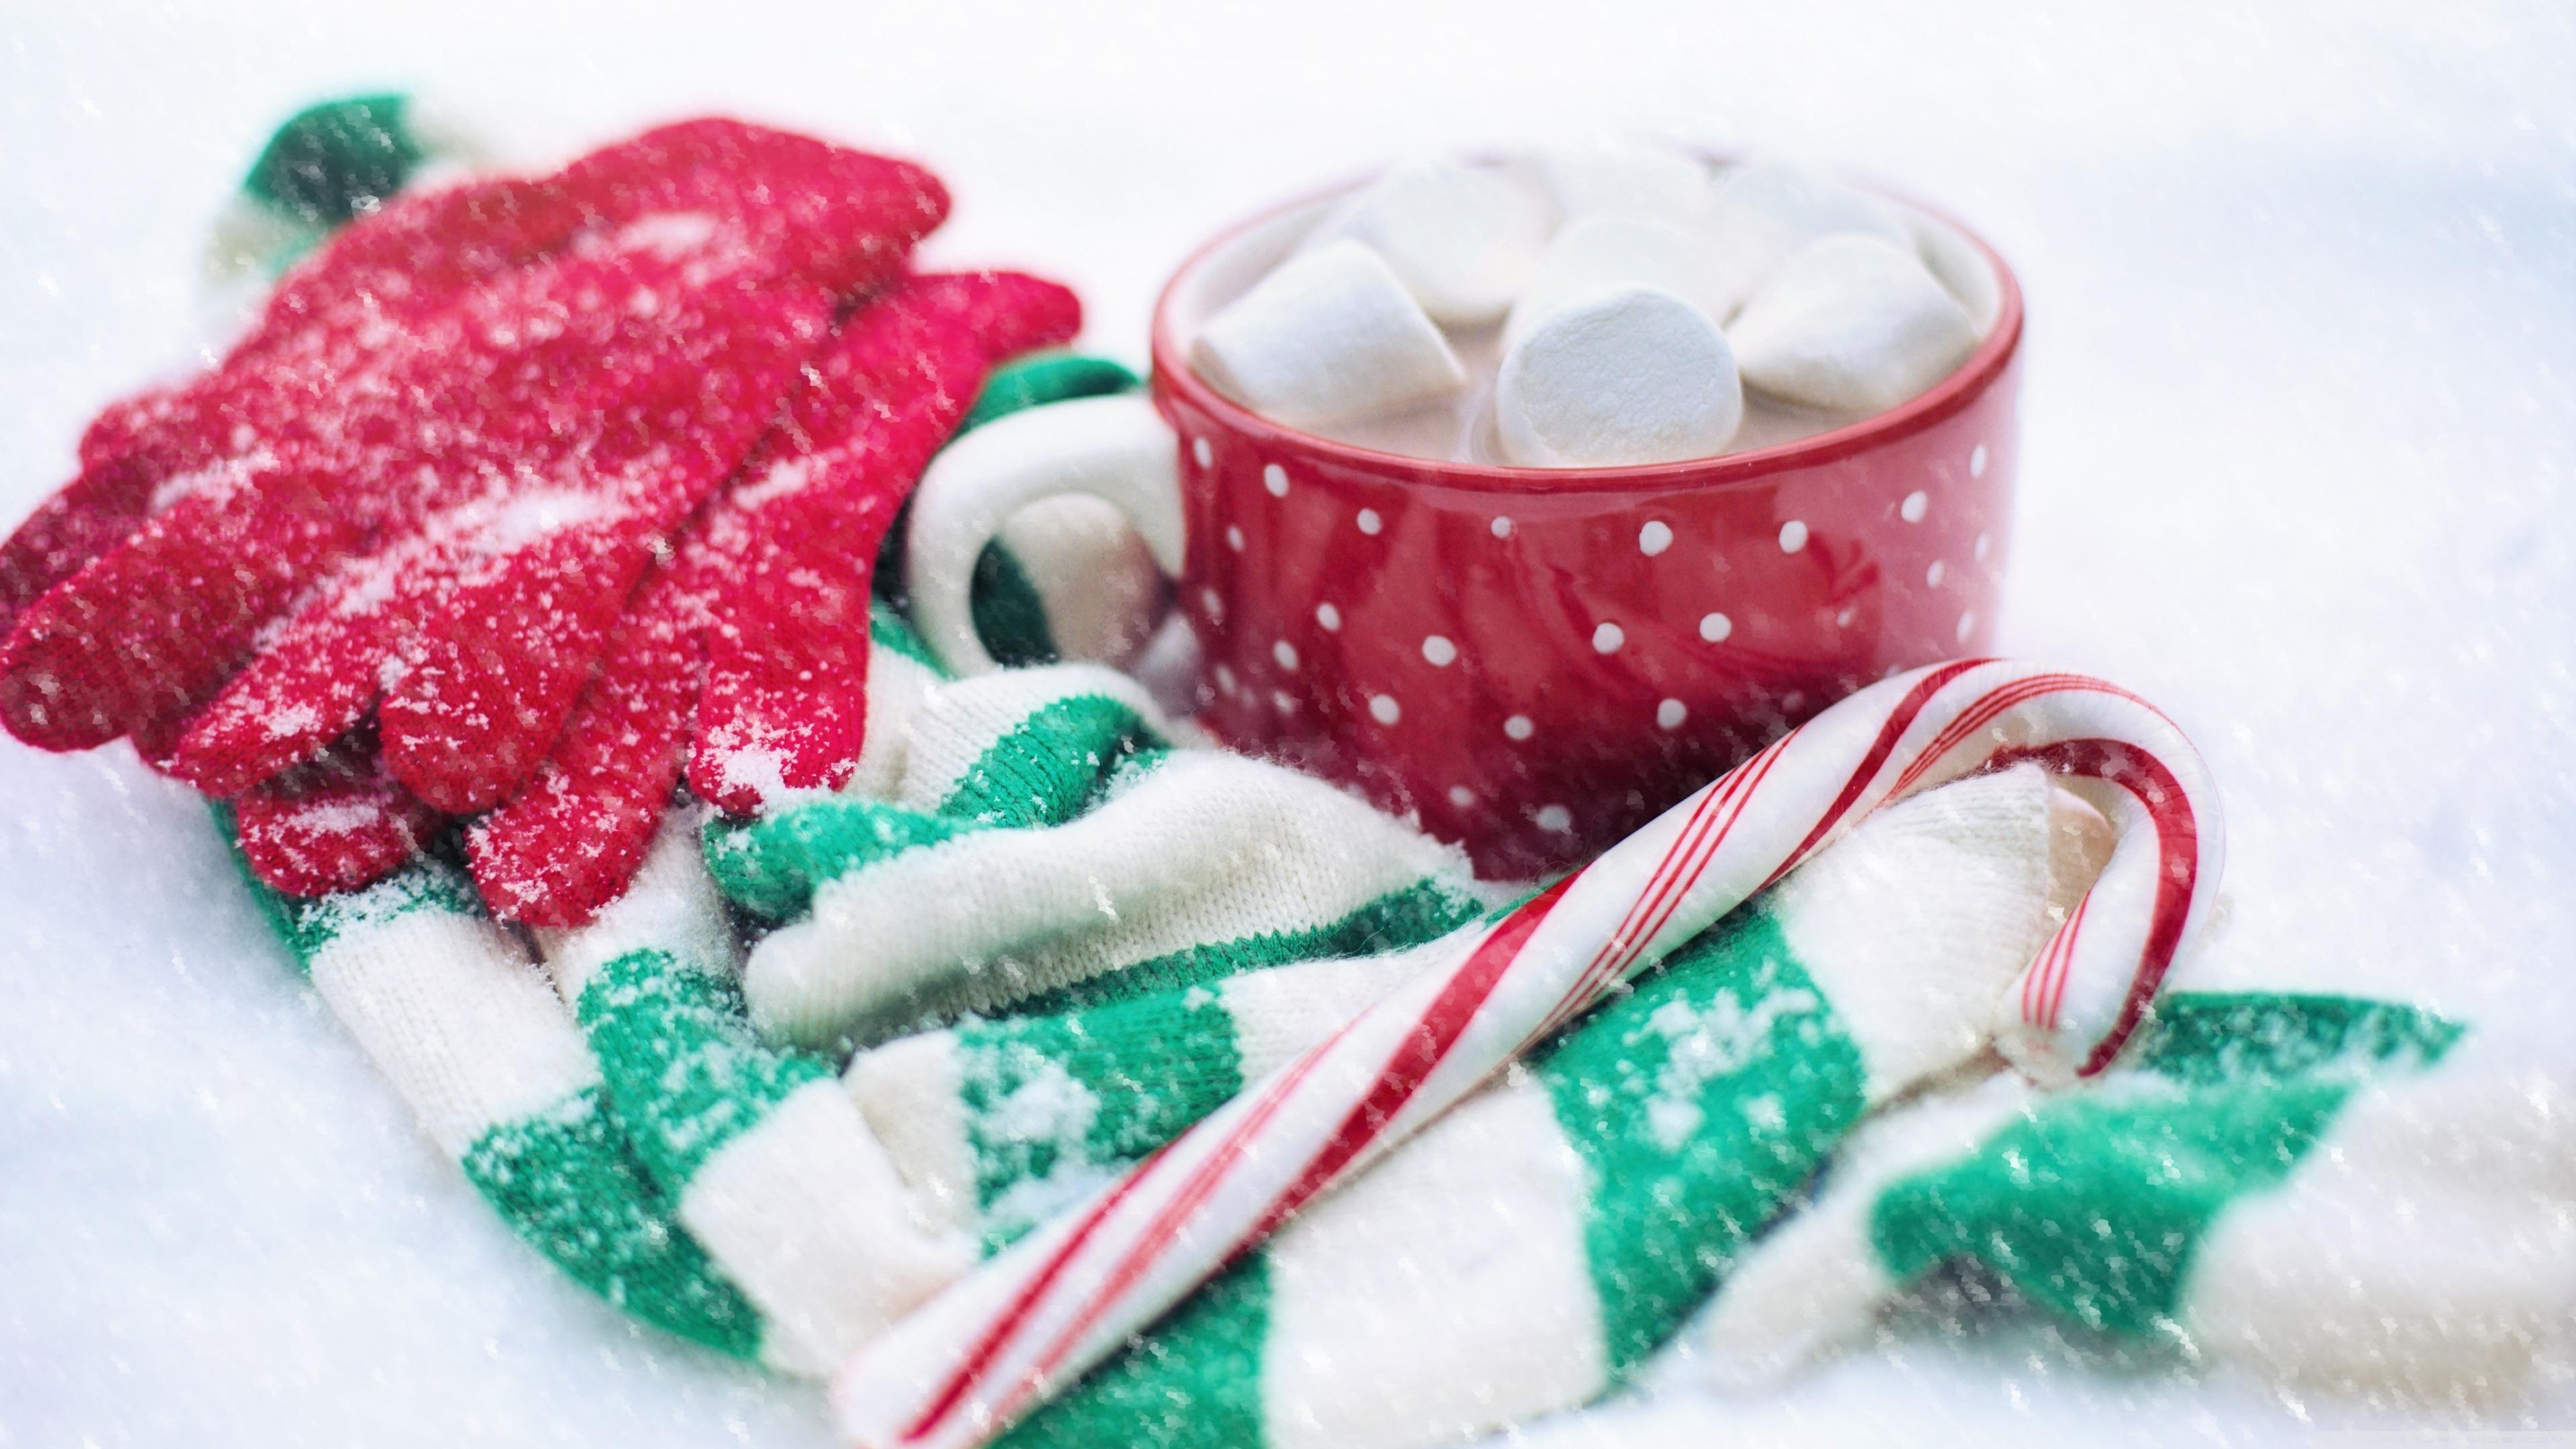 Hot chocolate and candy cane in the snow wallpaper